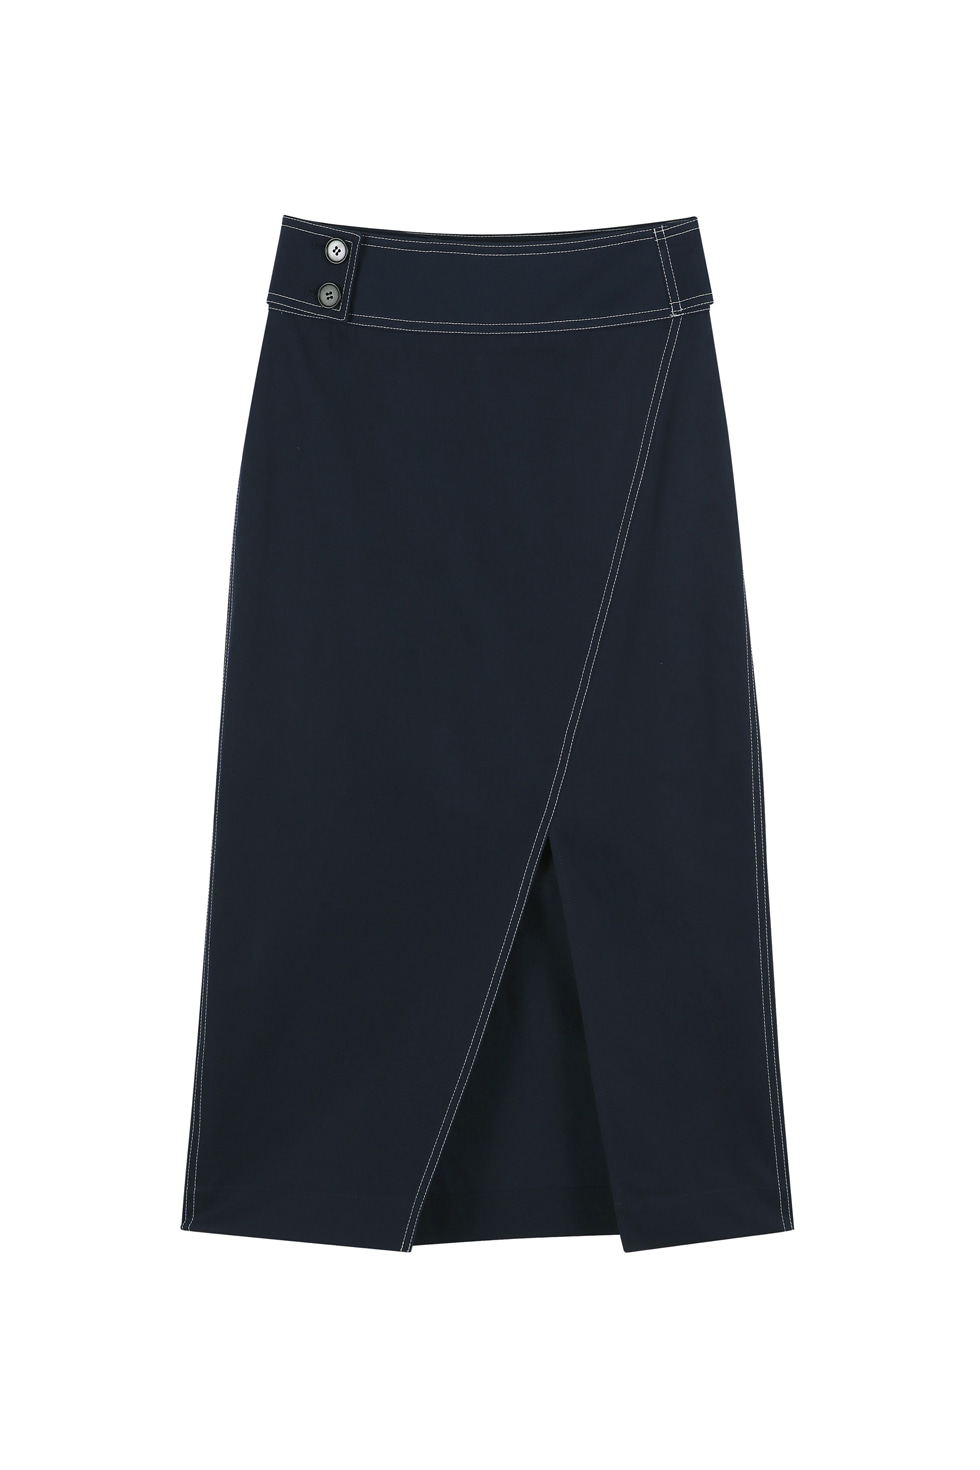 STITCH SKIRT - NAVY